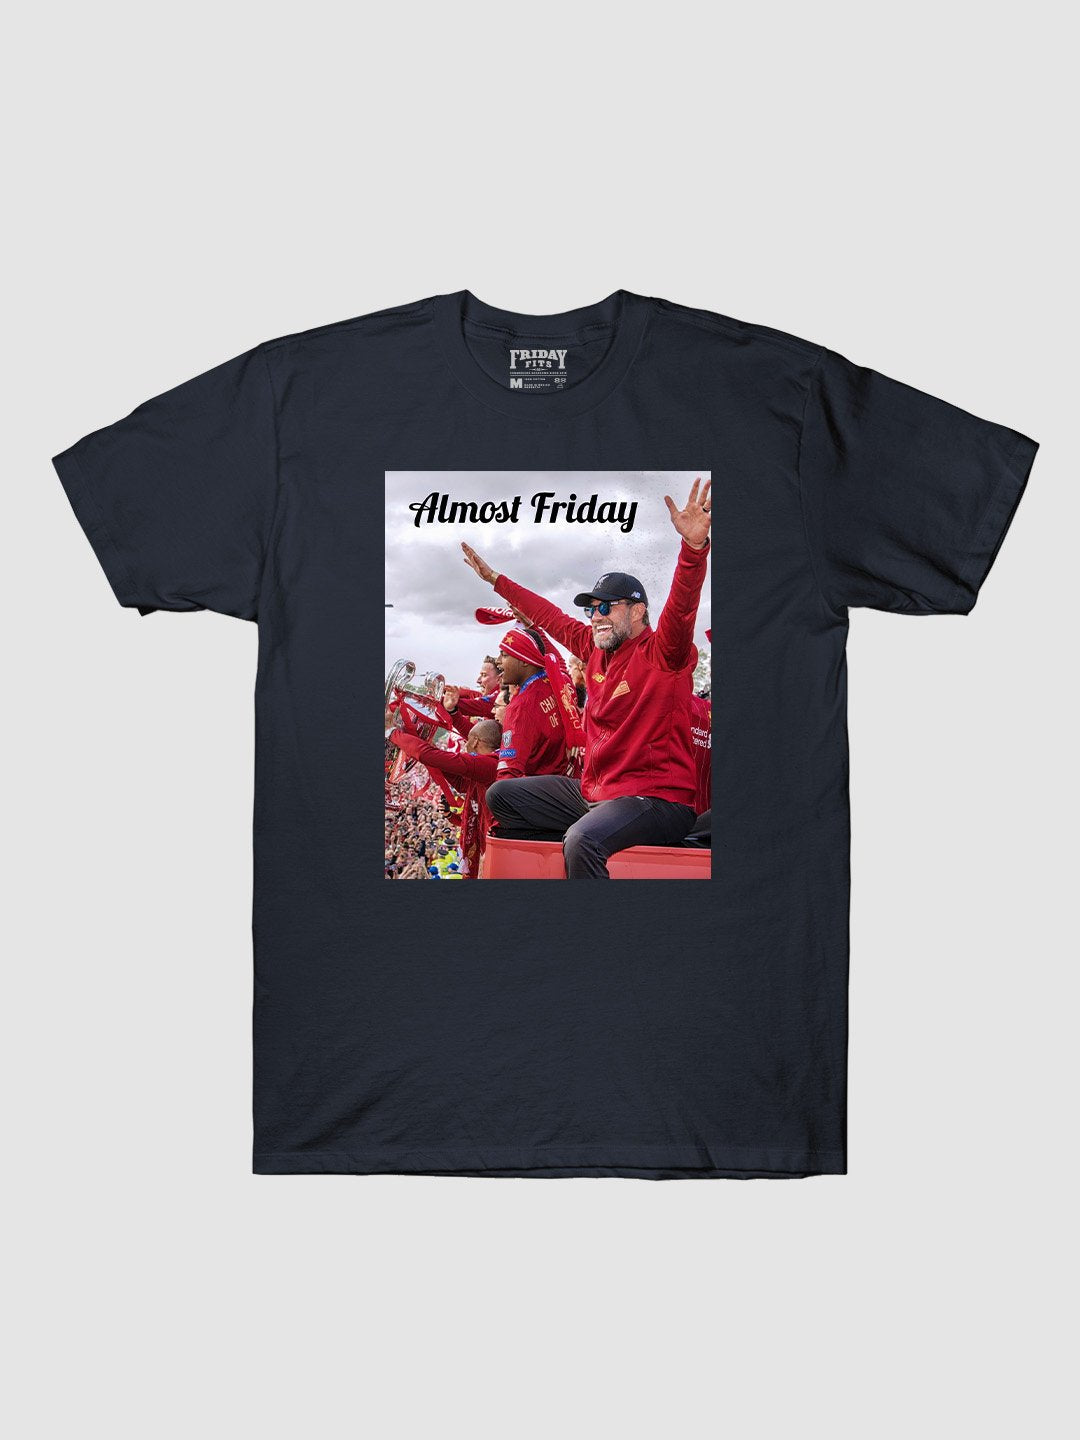 Almost Friday Bus T-Shirt